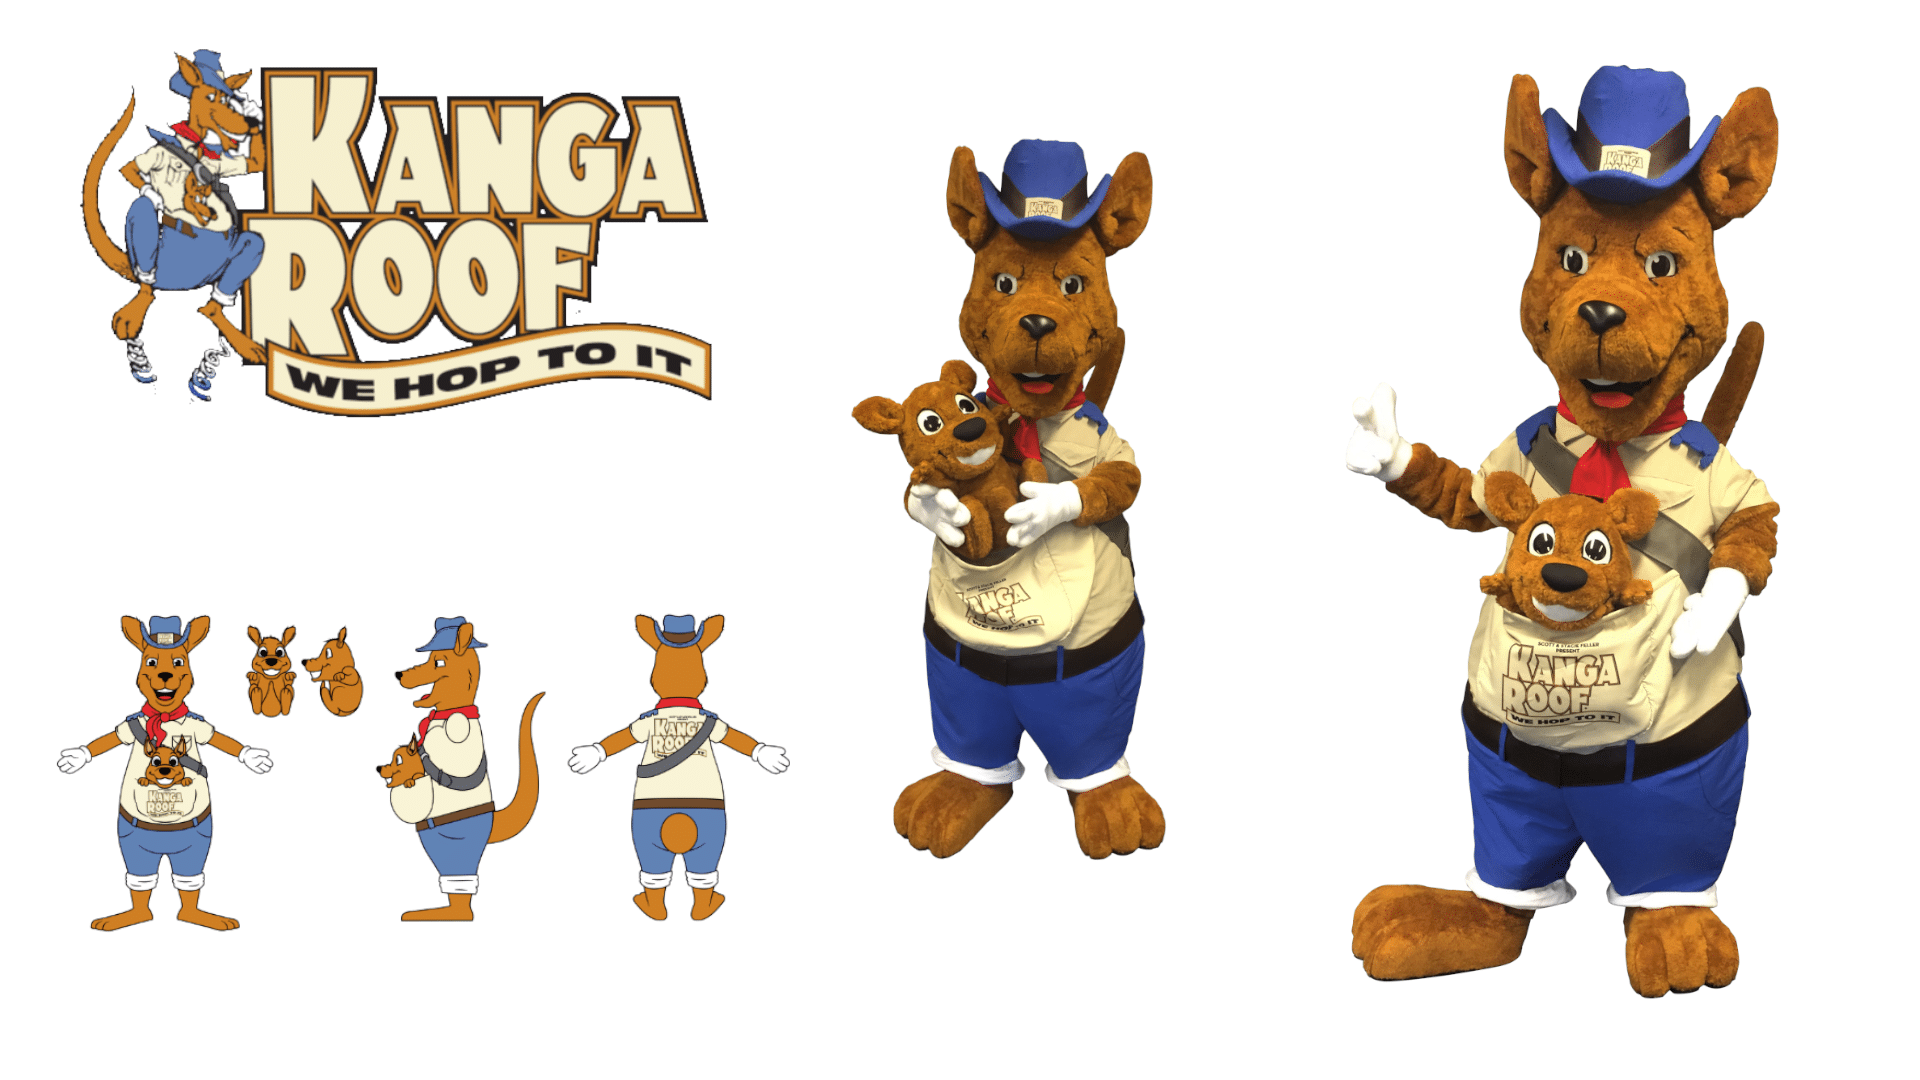 Custom-Mascot-Costume-Kangaroo-Kanga-Roof-by-Promo-Bears